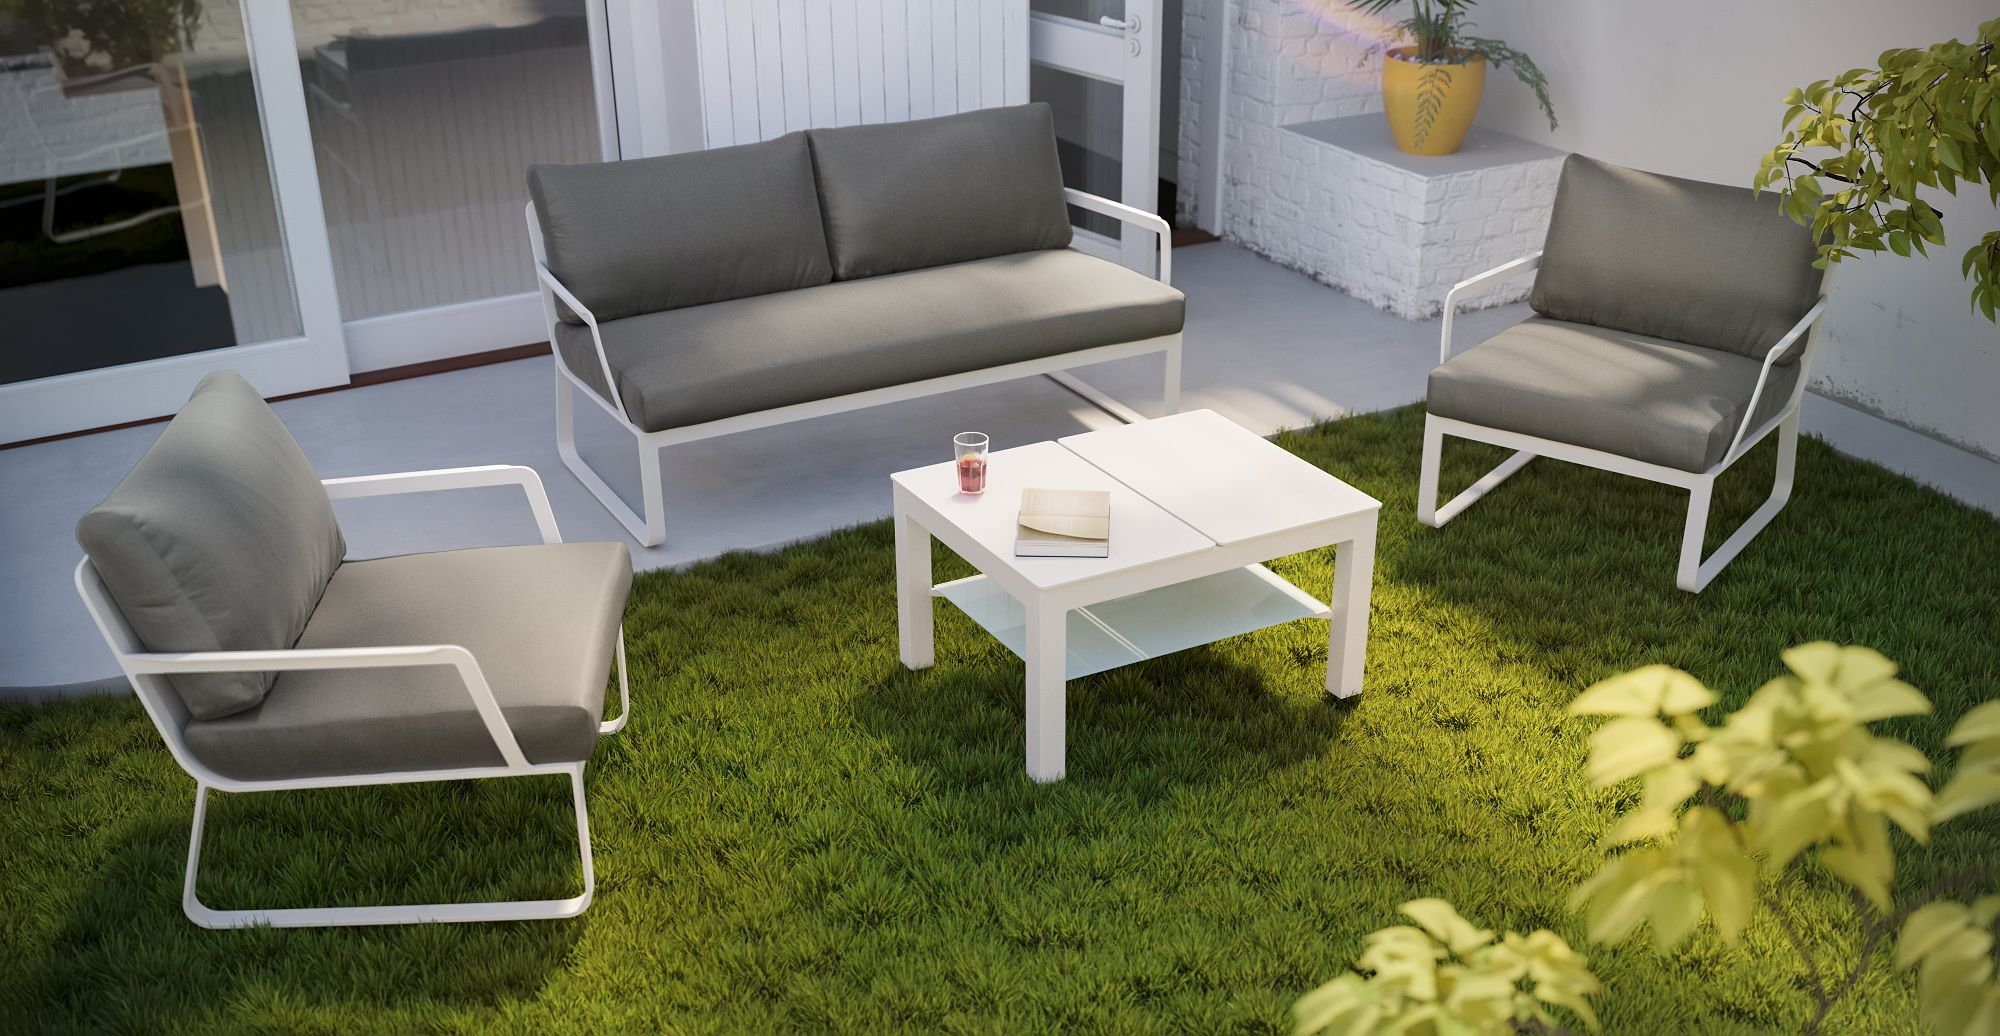 Lummus outdoor lounge set is the outdoor trend minimal yet sophisticated elegant with so